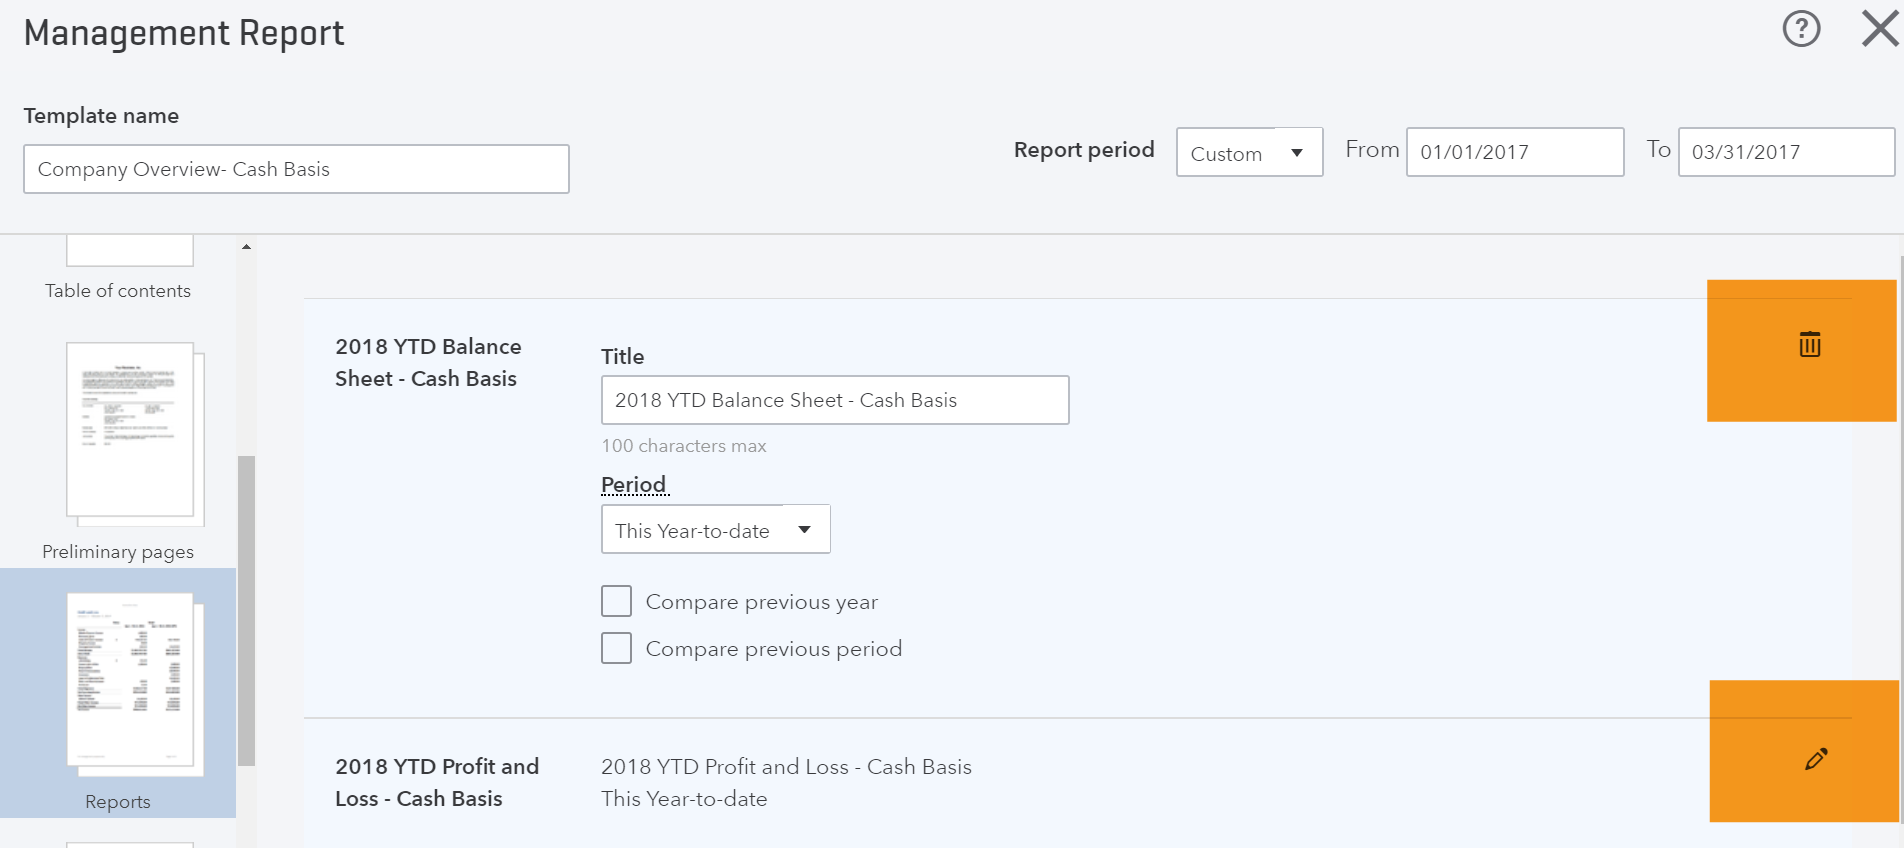 Management Report Add Delete Icons